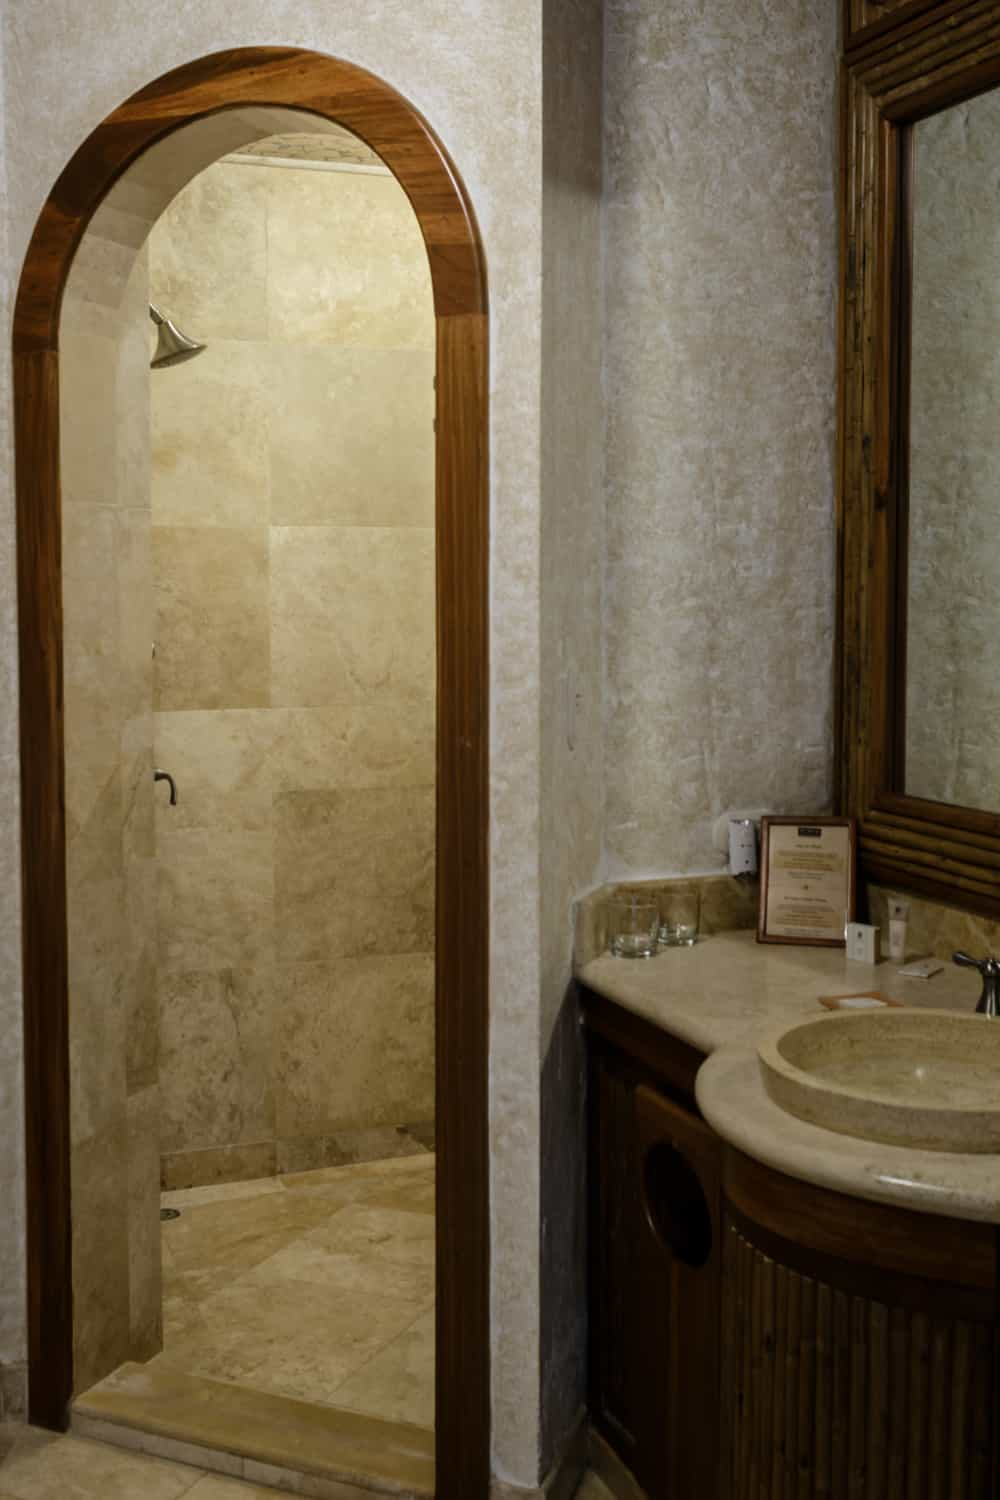 Stone walk-in shower in Spings Resort deluxe accommodations.